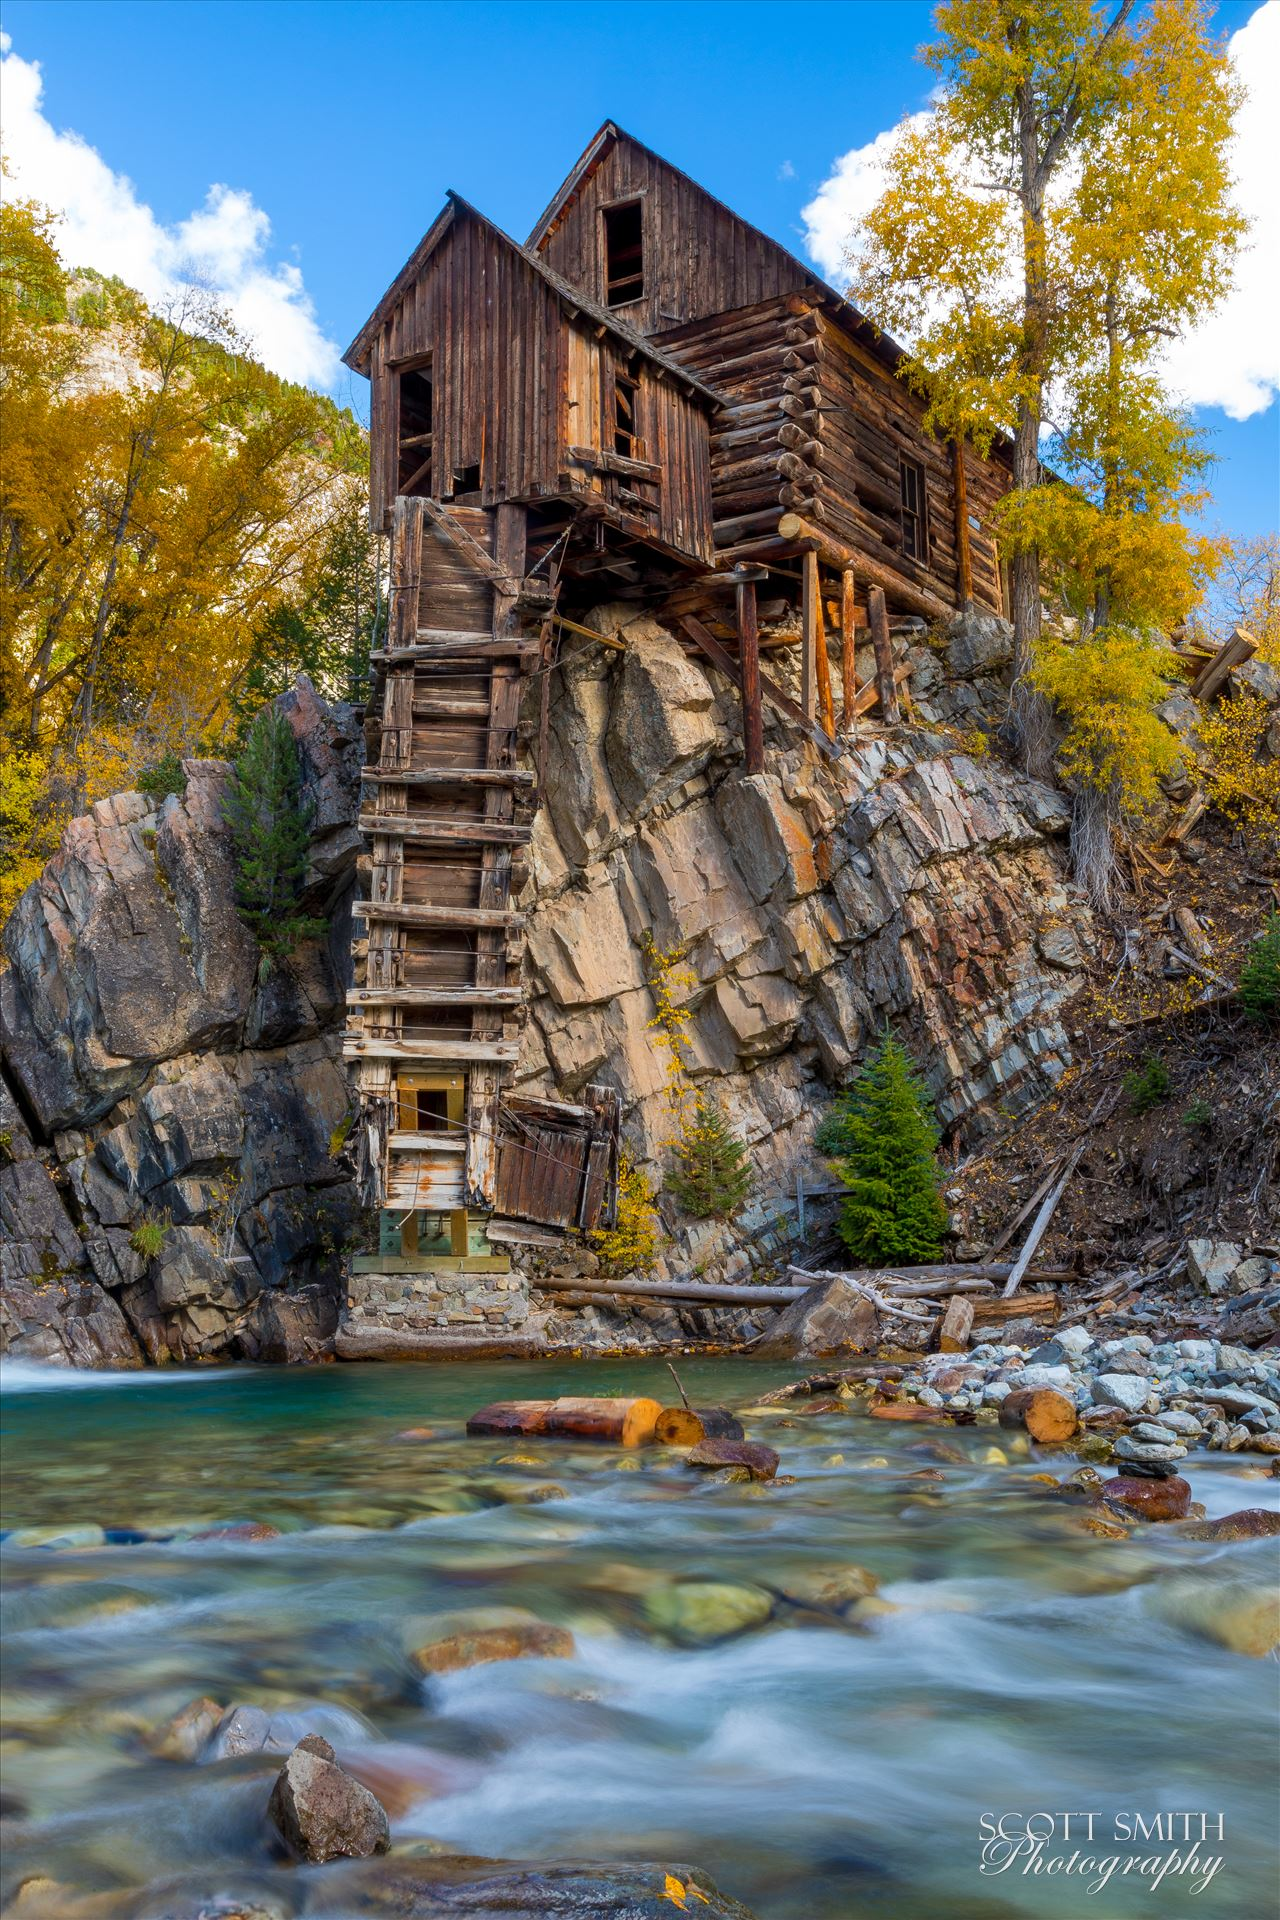 Crystal Mill, Colorado 09 - The Crystal Mill, or the Old Mill is an 1892 wooden powerhouse located on an outcrop above the Crystal River in Crystal, Colorado by D Scott Smith